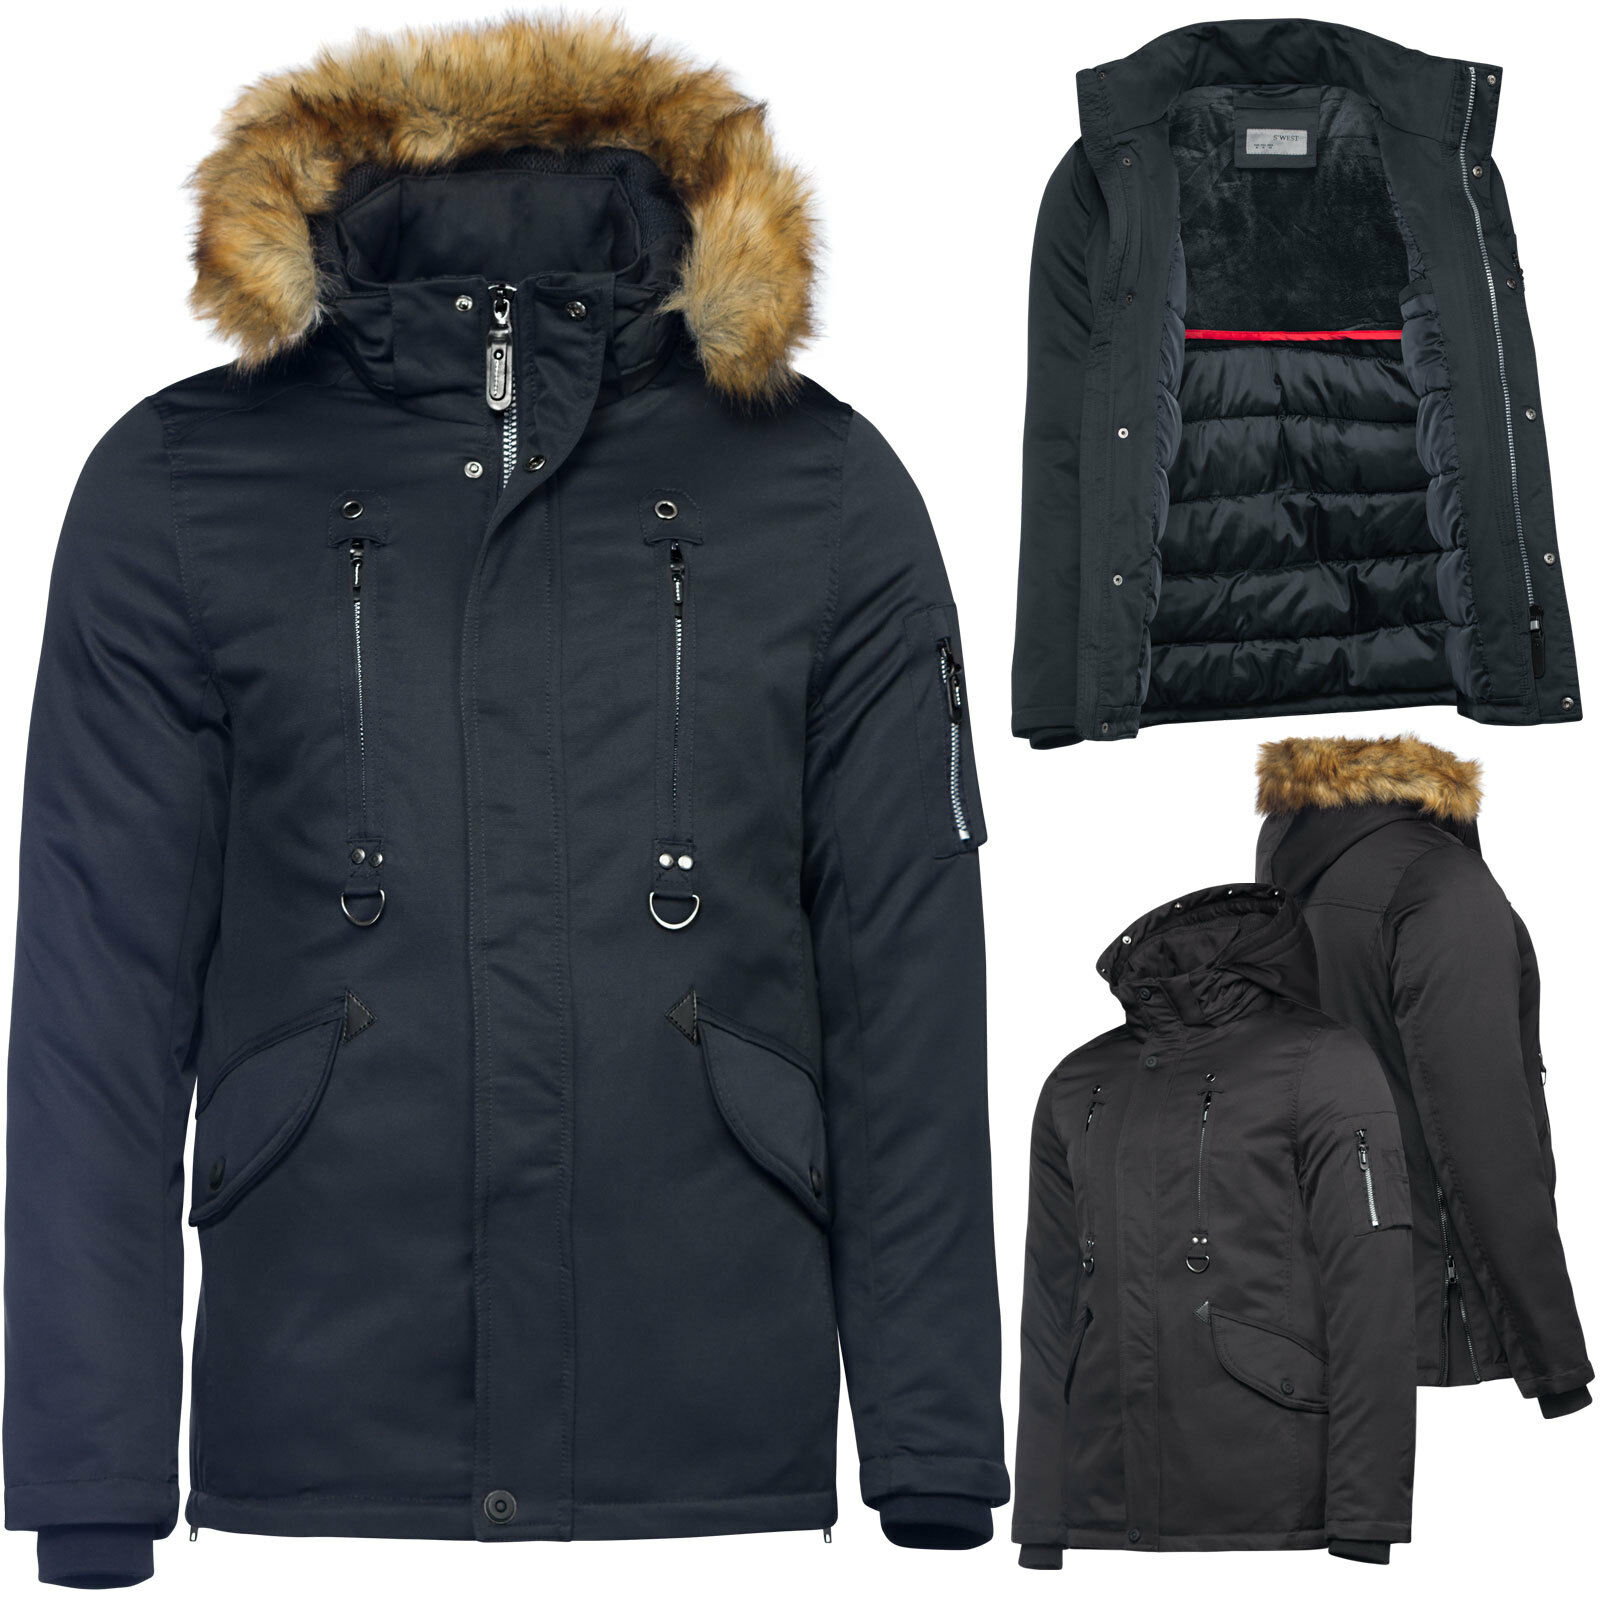 herren winterjacke wasserdicht lang parka fell kapuze. Black Bedroom Furniture Sets. Home Design Ideas